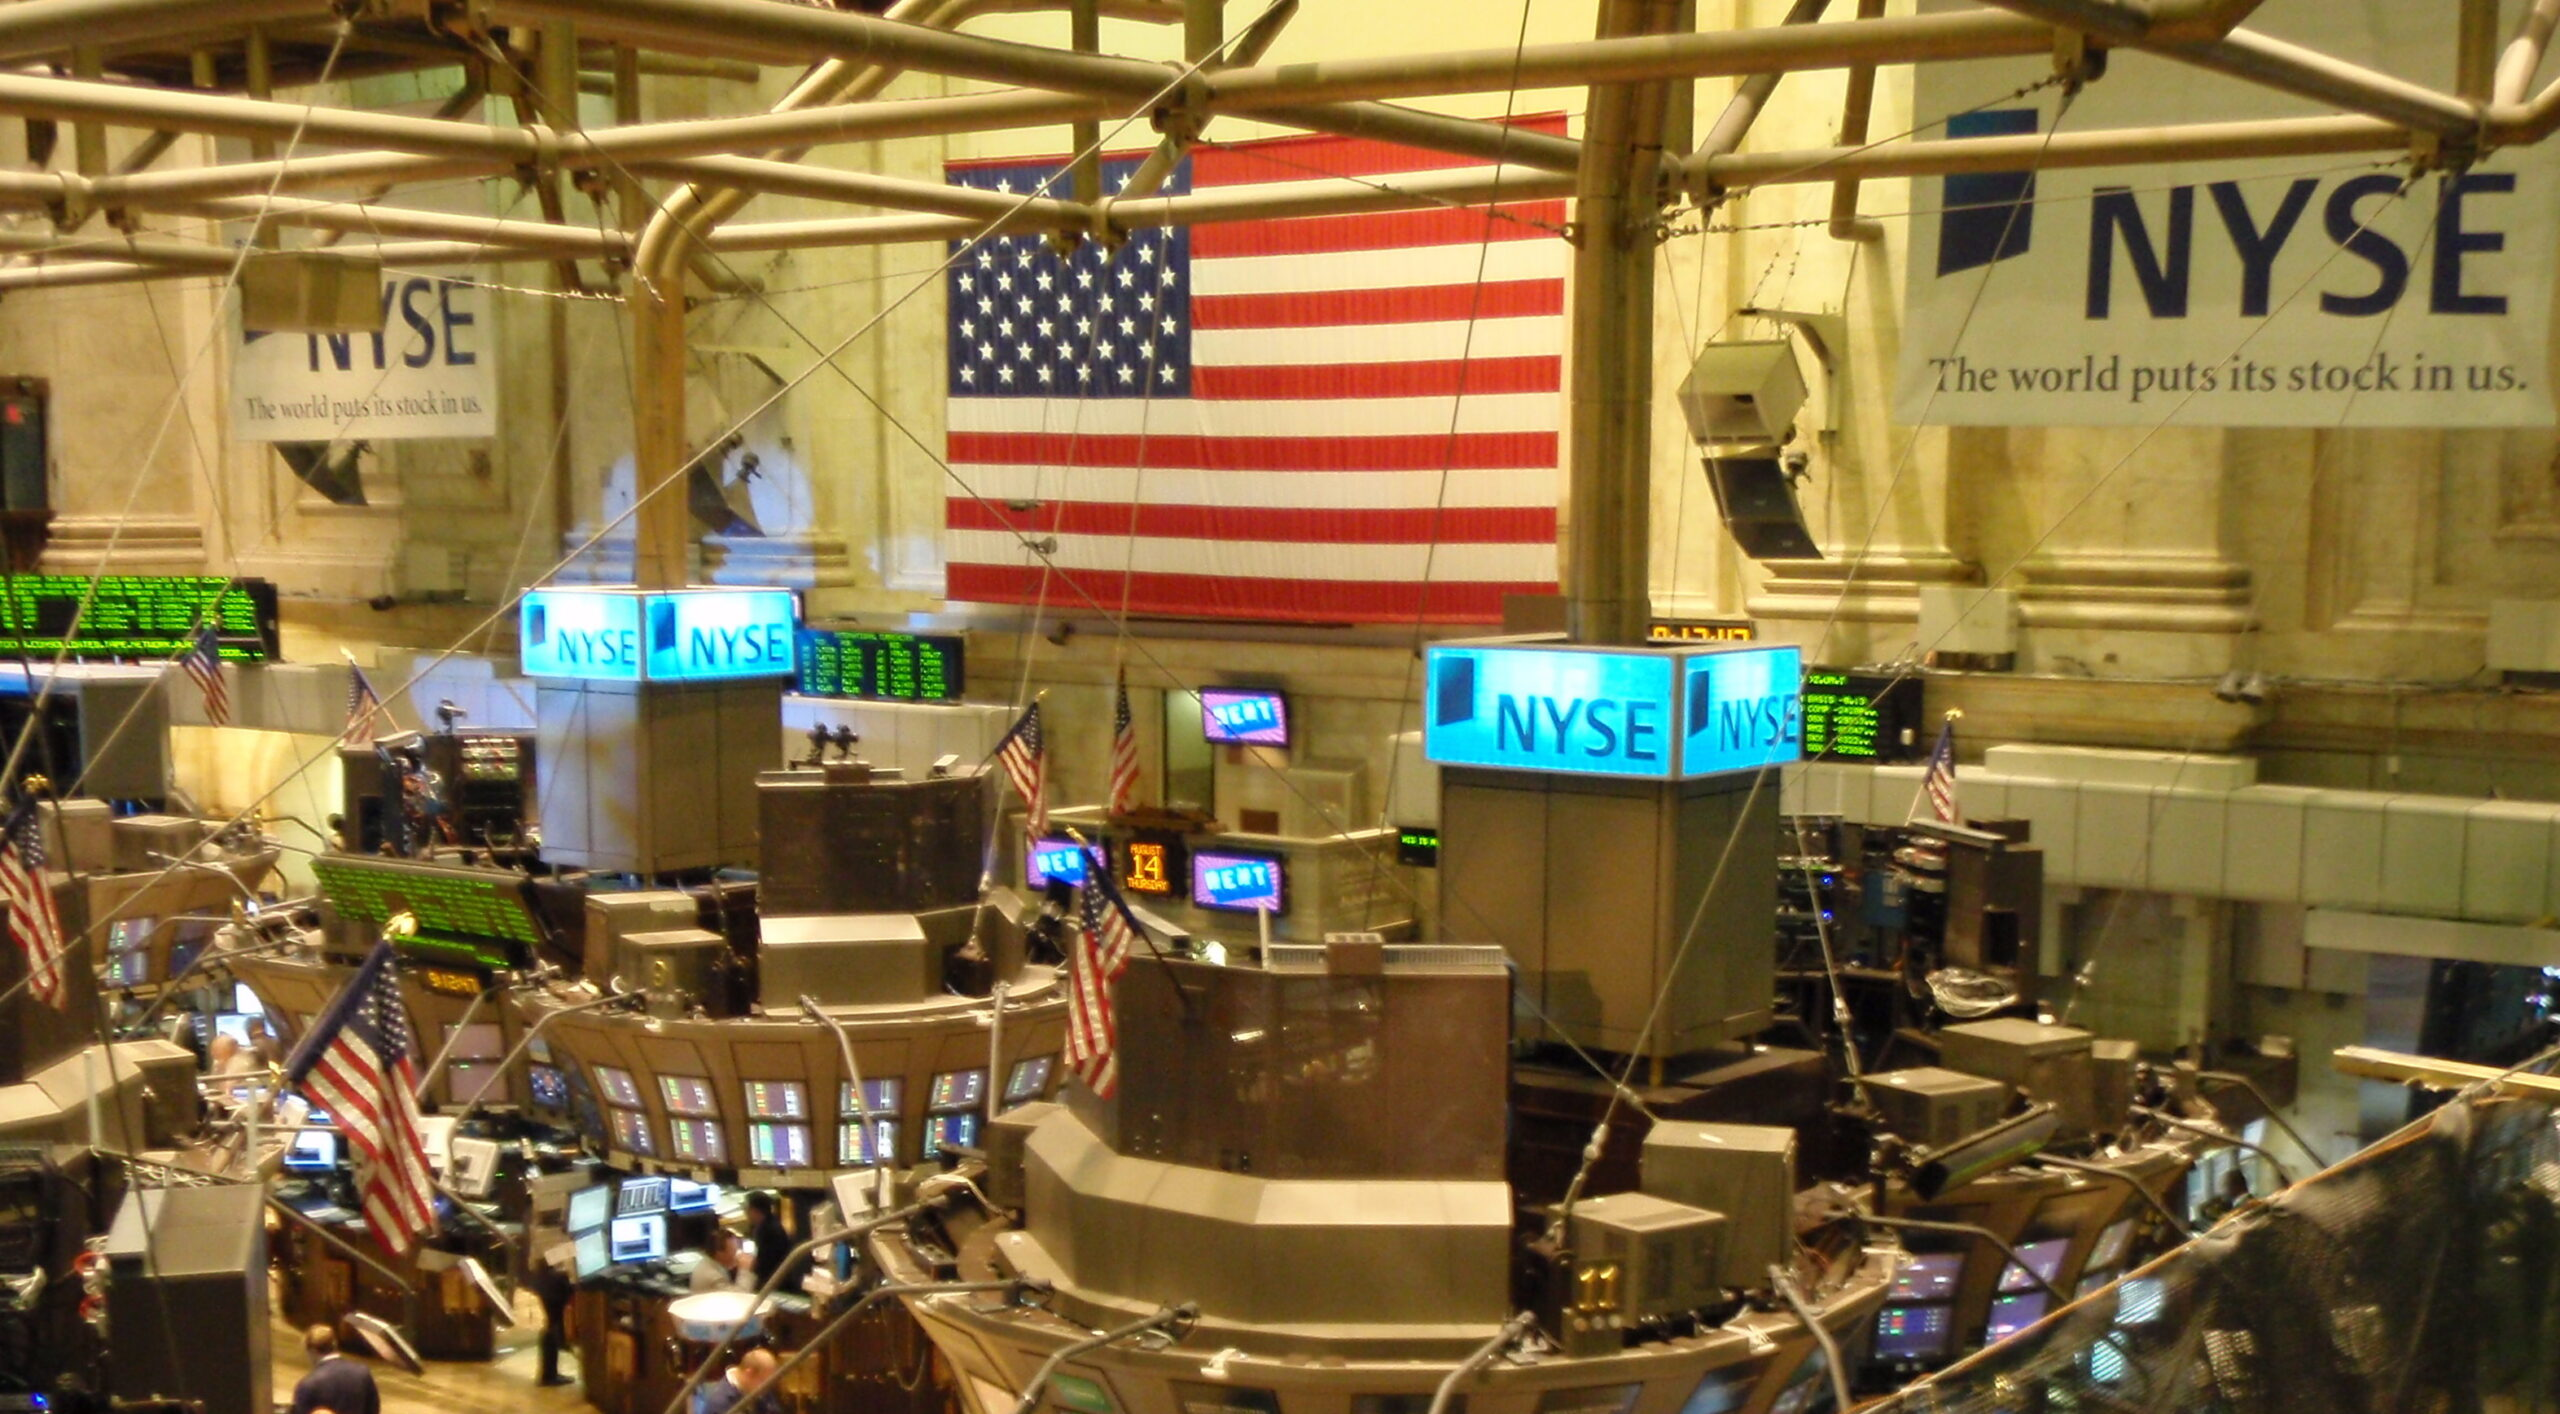 A view from the Member's Gallery inside the New York Stock Exchange, August 2008. (Ryan Lawler, Wikimedia Commons)